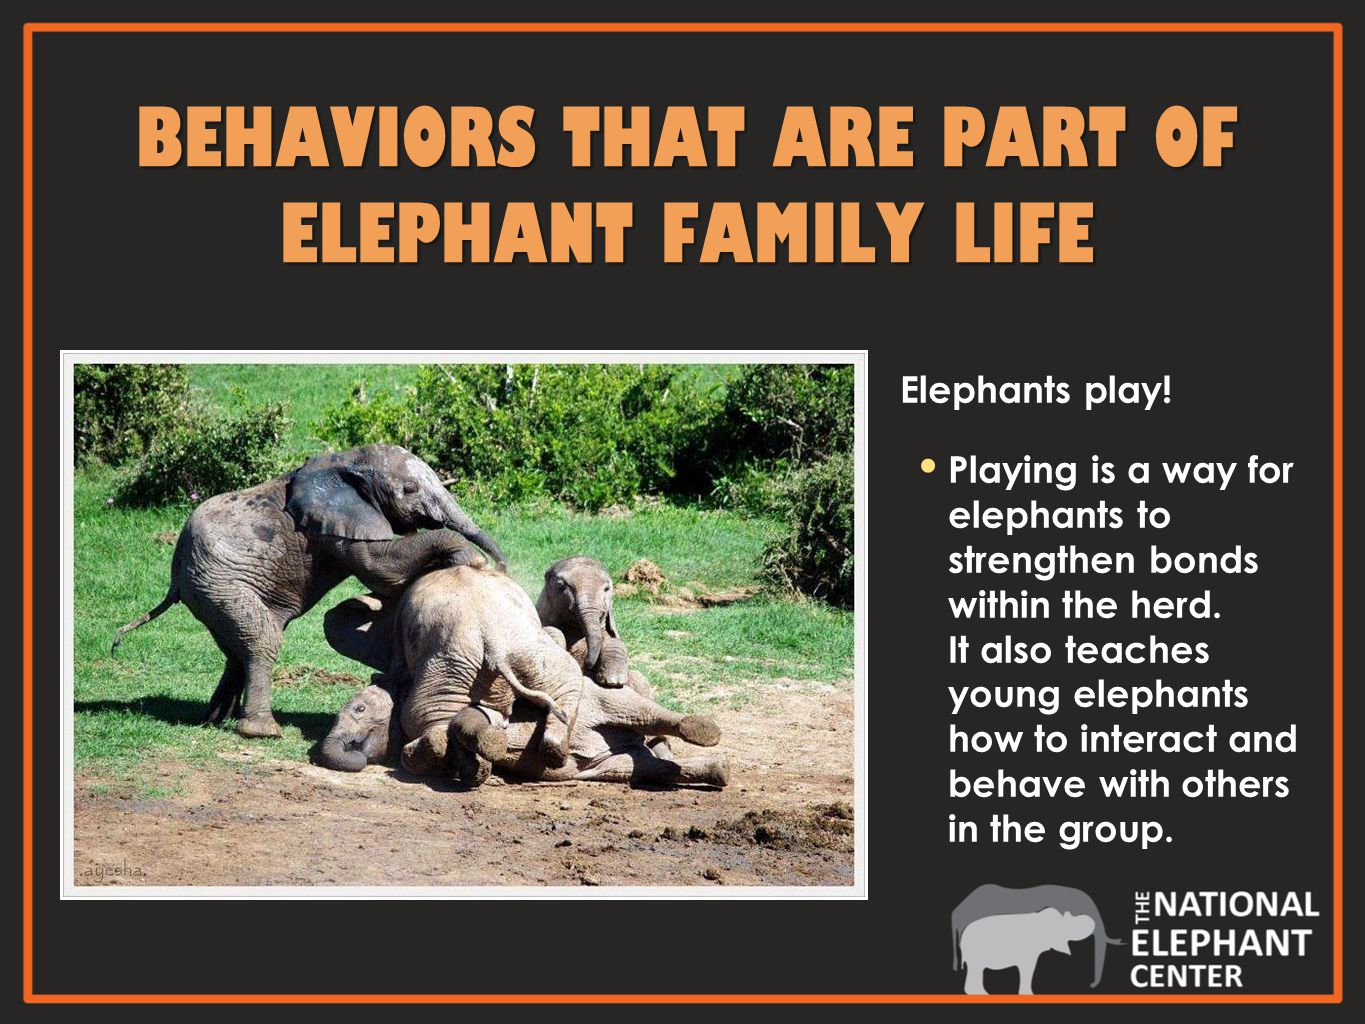 Elephants play. Playing is a way for elephants to strengthen bonds within the herd.